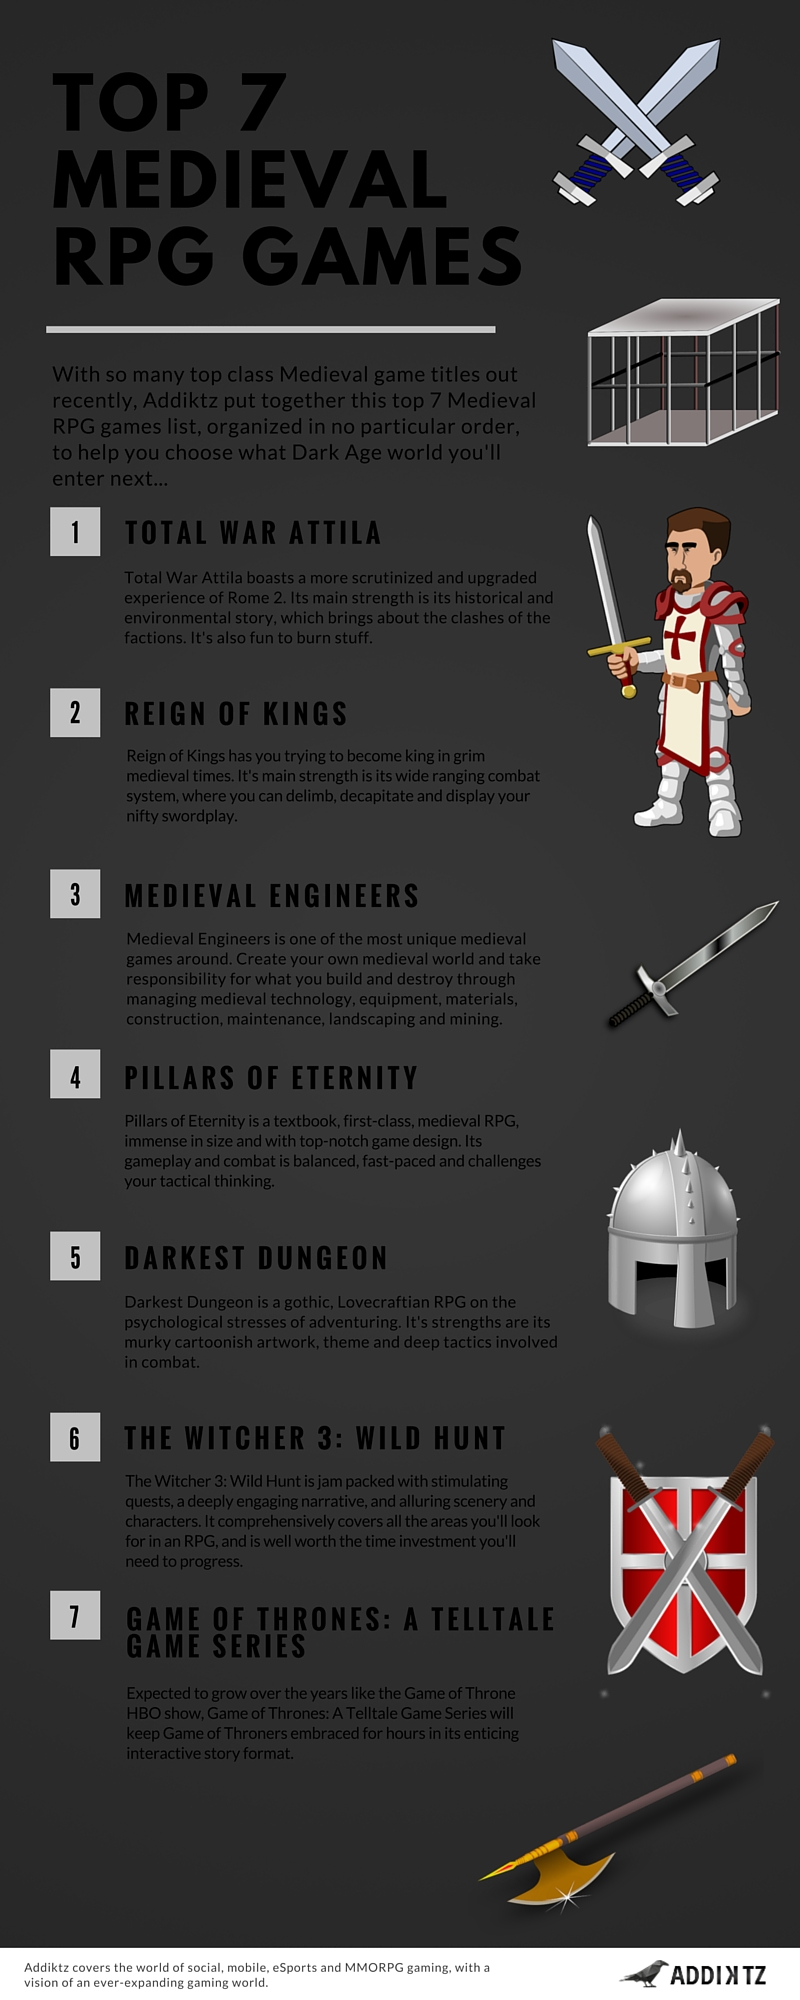 Top 7 Medieval RPG Games [Infographic]